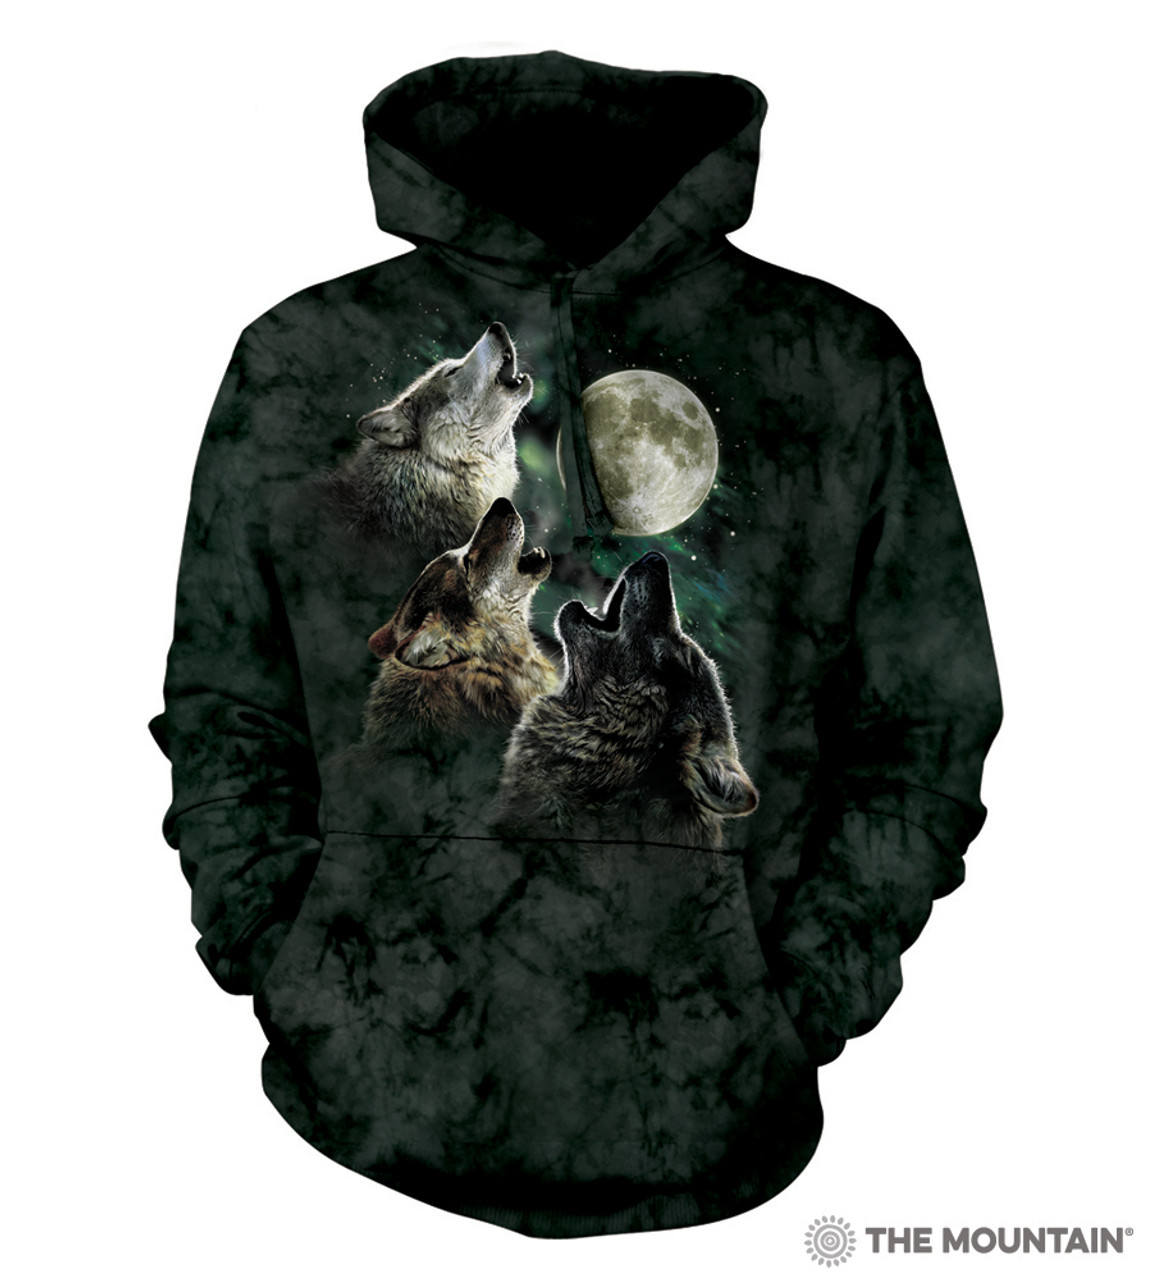 The Mountain Adult Unisex Hoodie Sweatshirt - Three Wolf Moon